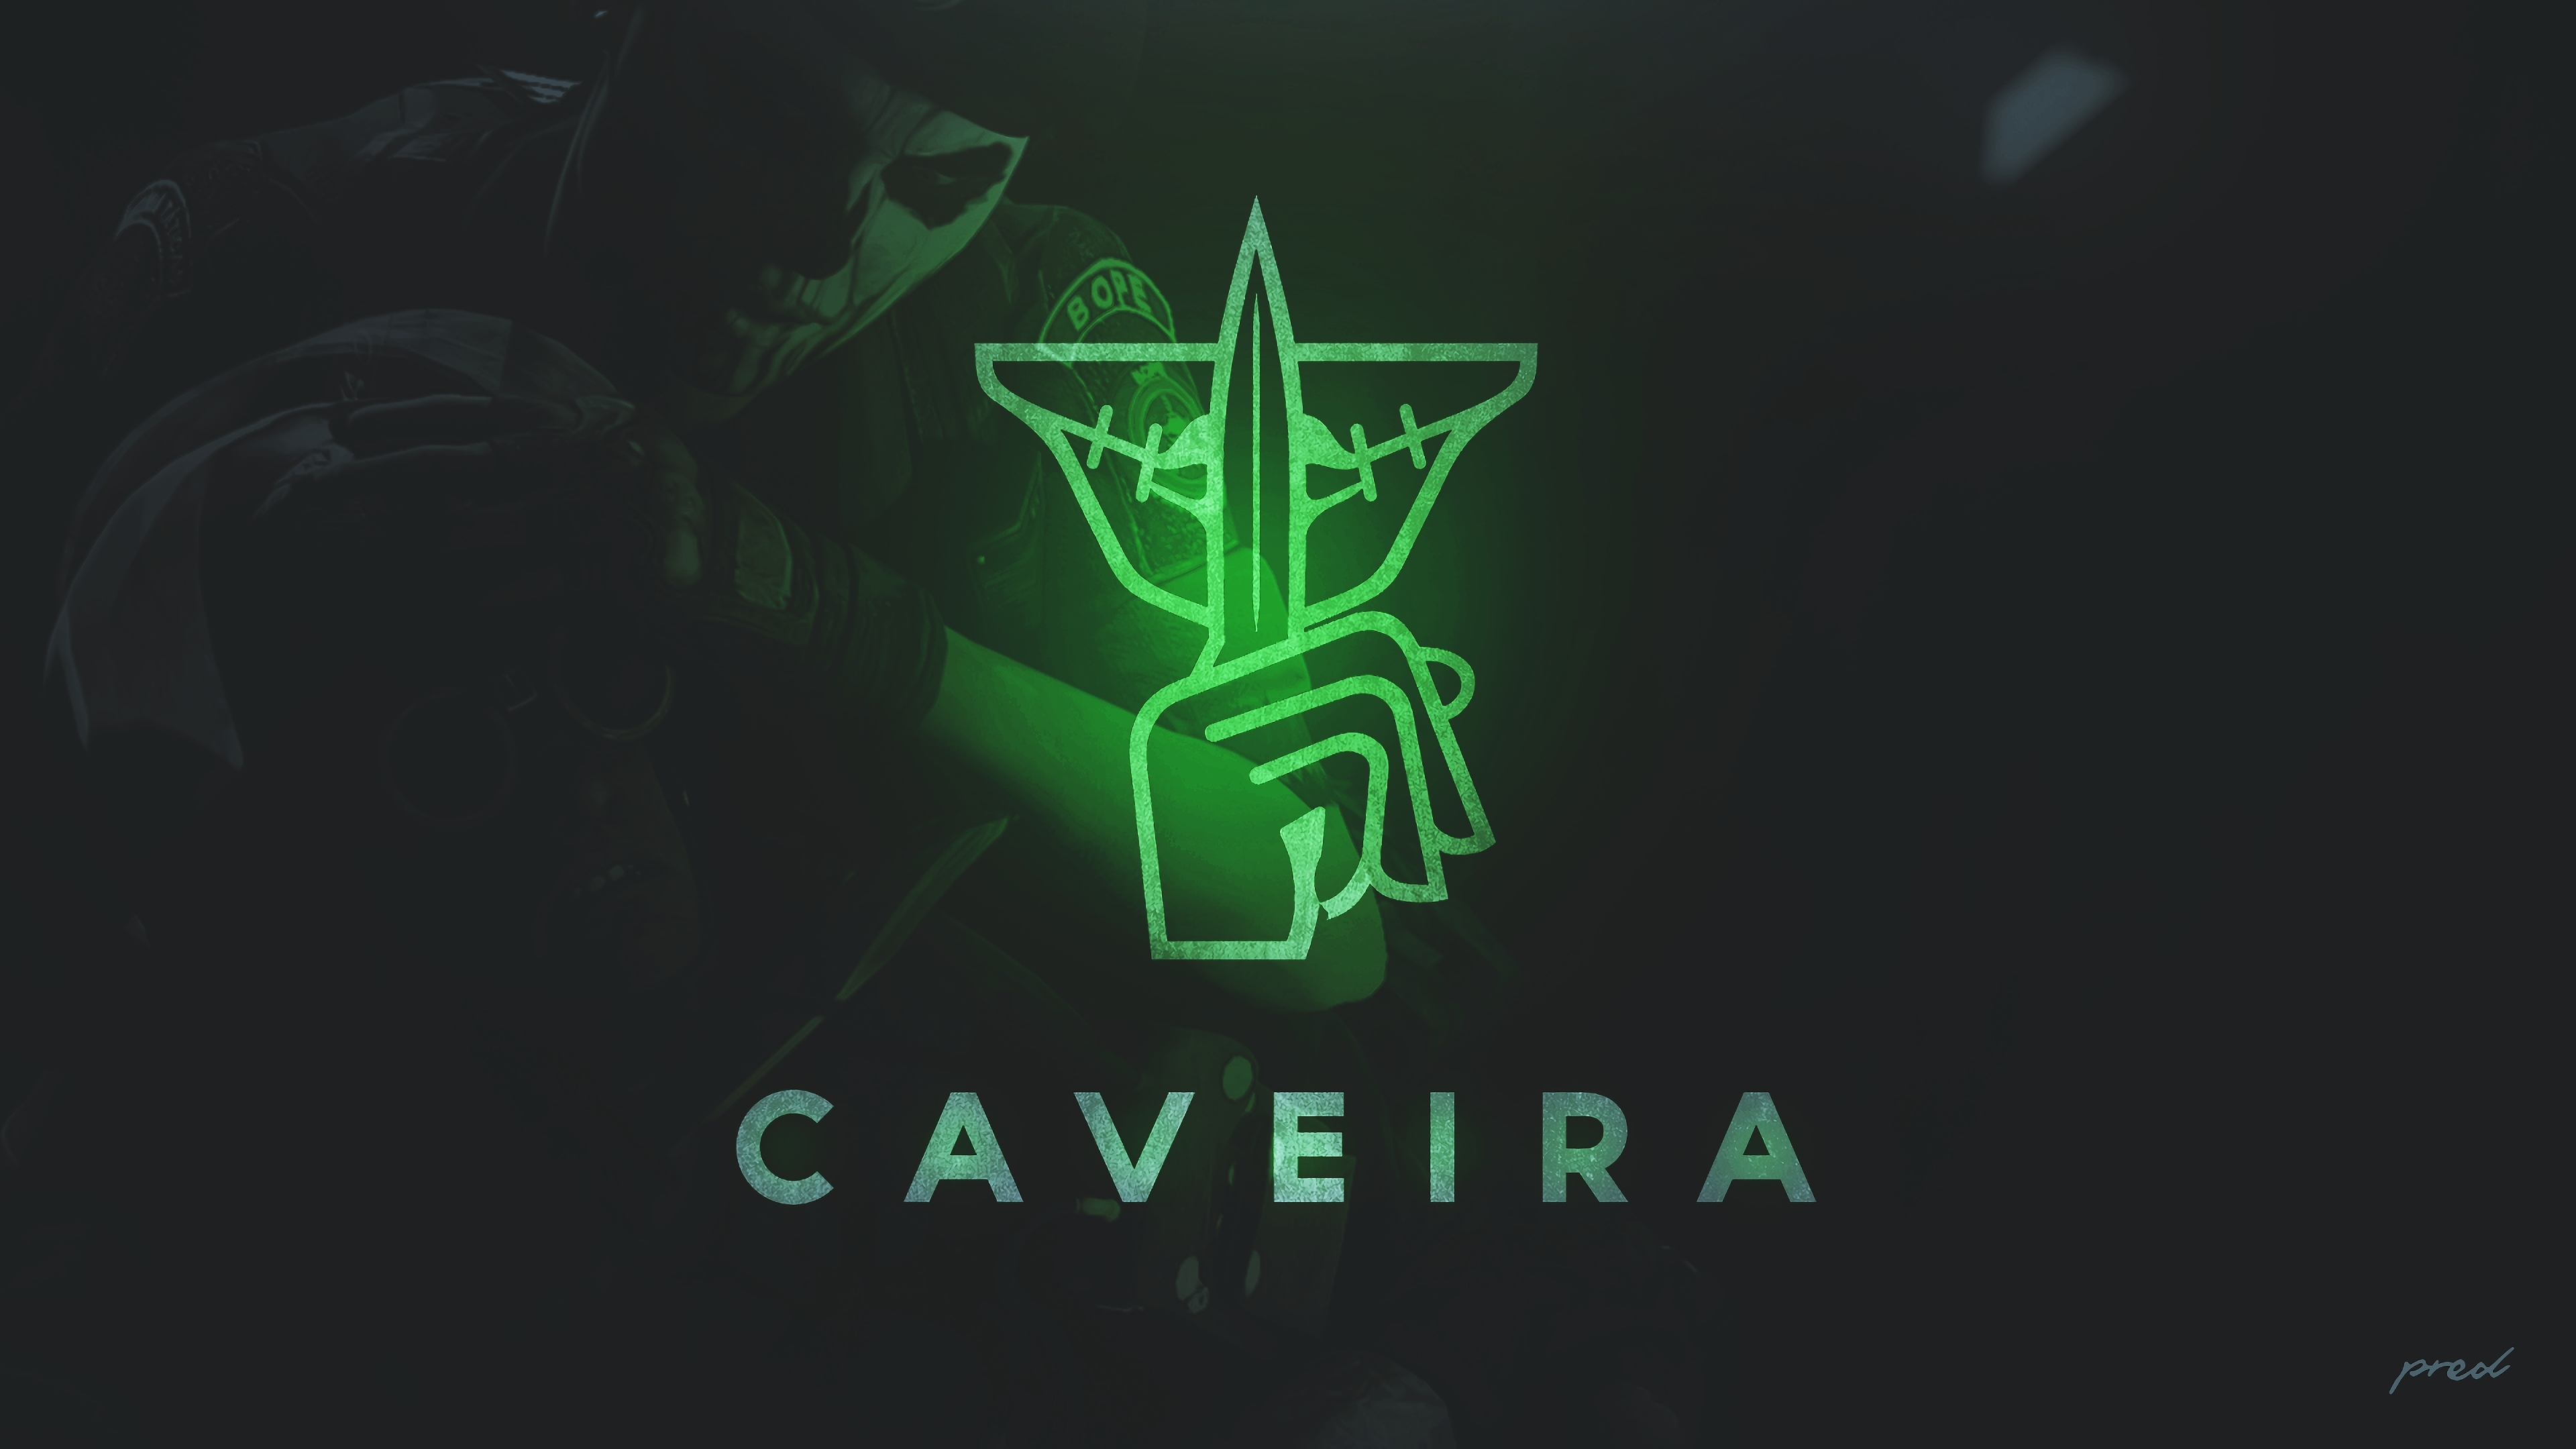 42 Caveira Wallpaper On Wallpapersafari